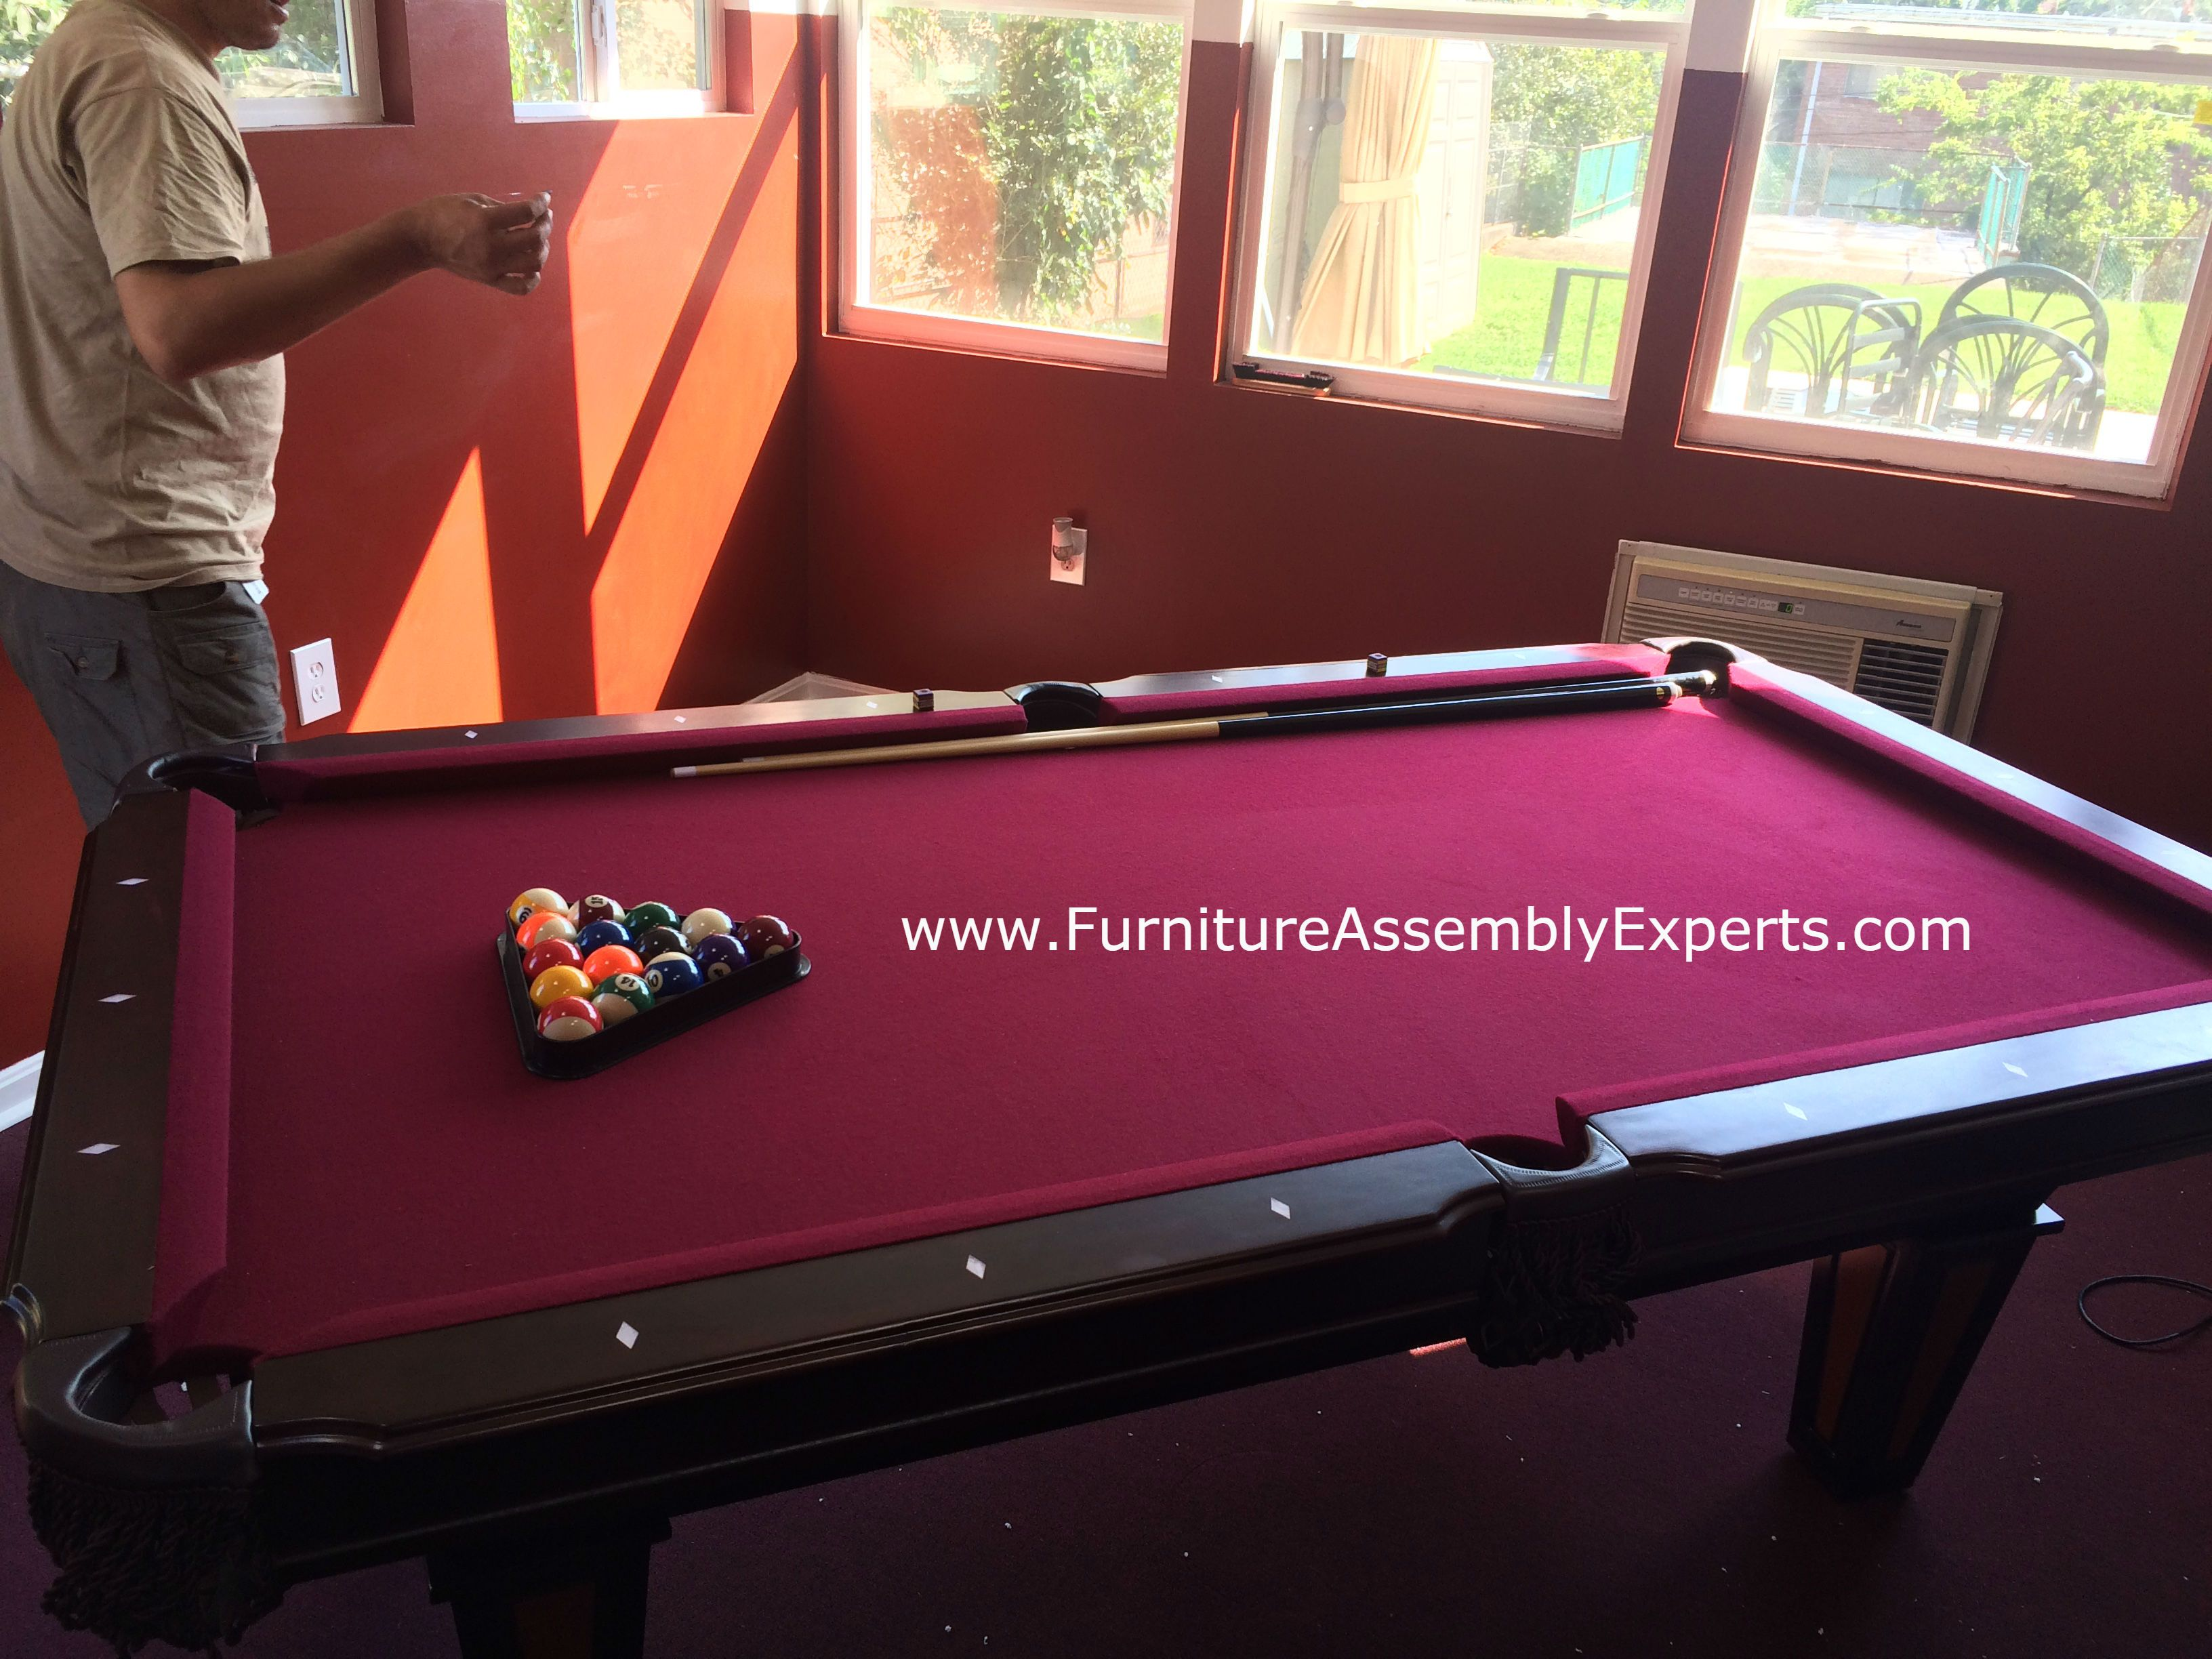 Billiard Pool Table Disassembly Moving Relocation Call - Pool table stores in maryland